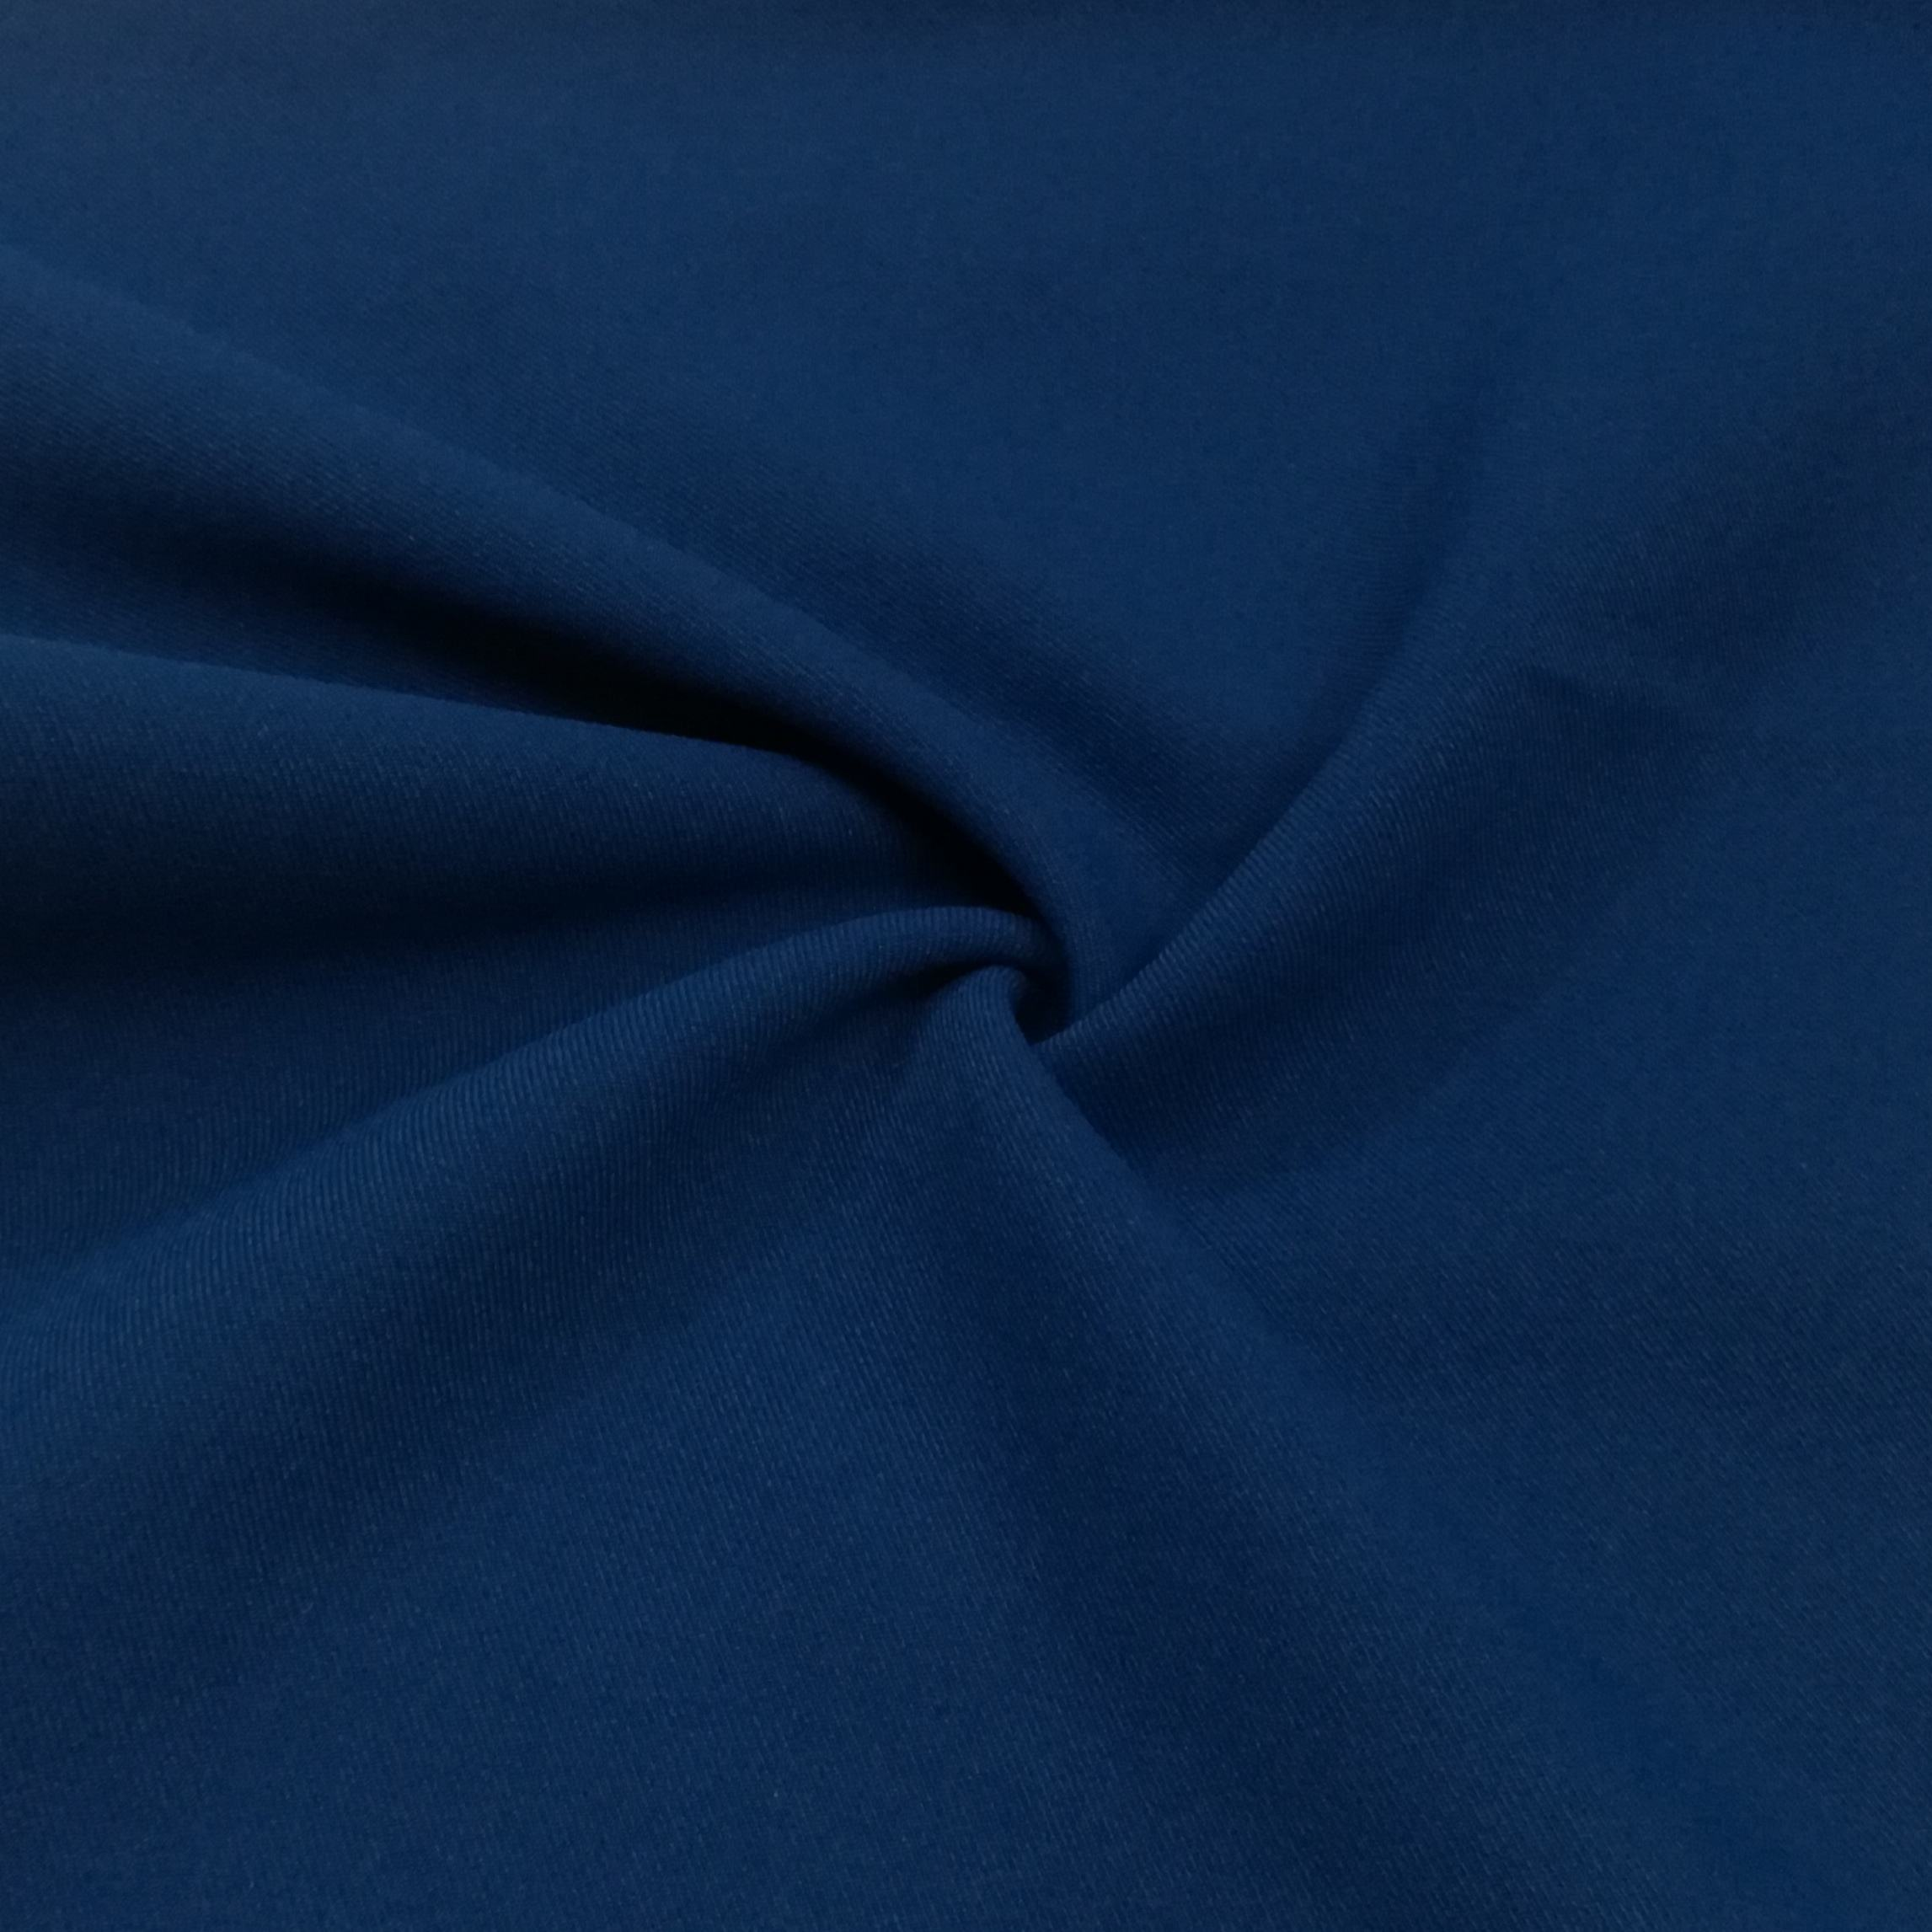 Twill fabric 100%(Rimens) cotton touch polyester soft moisture management four way stretch breathable for sport garment